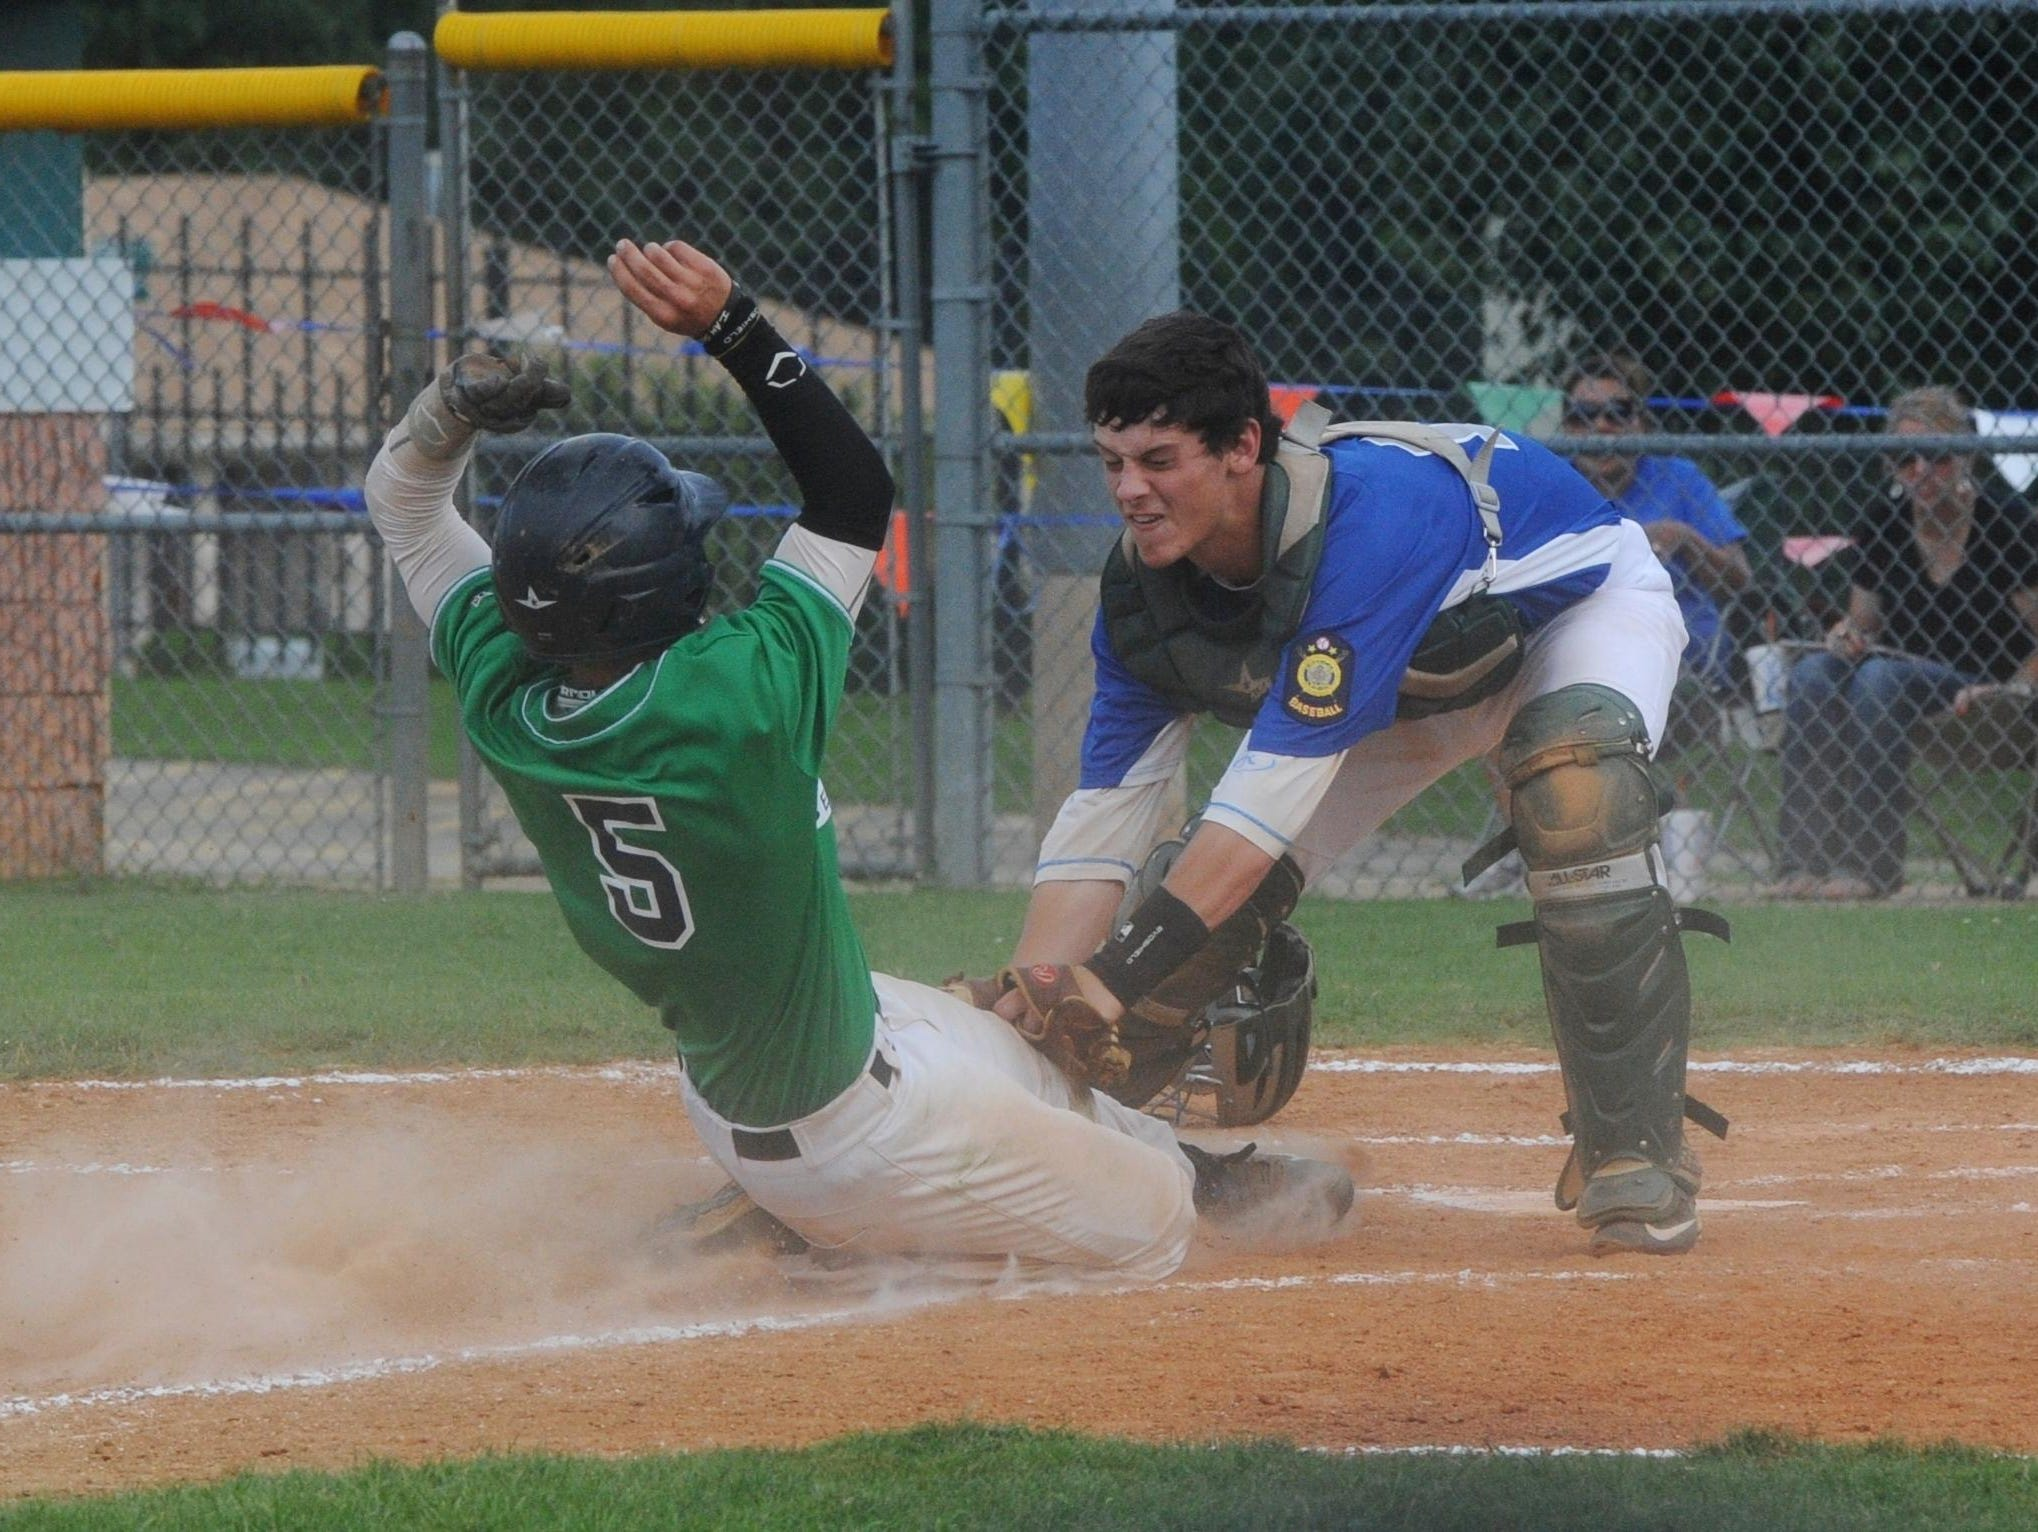 Hopper Environmental Services' Jon Adams (5) is tagged out at home plate by Paragould catcher Andrew Cooper during the Exterminators' 8-4 loss to Glen Sain Ford on Monday night at Cooper Park.